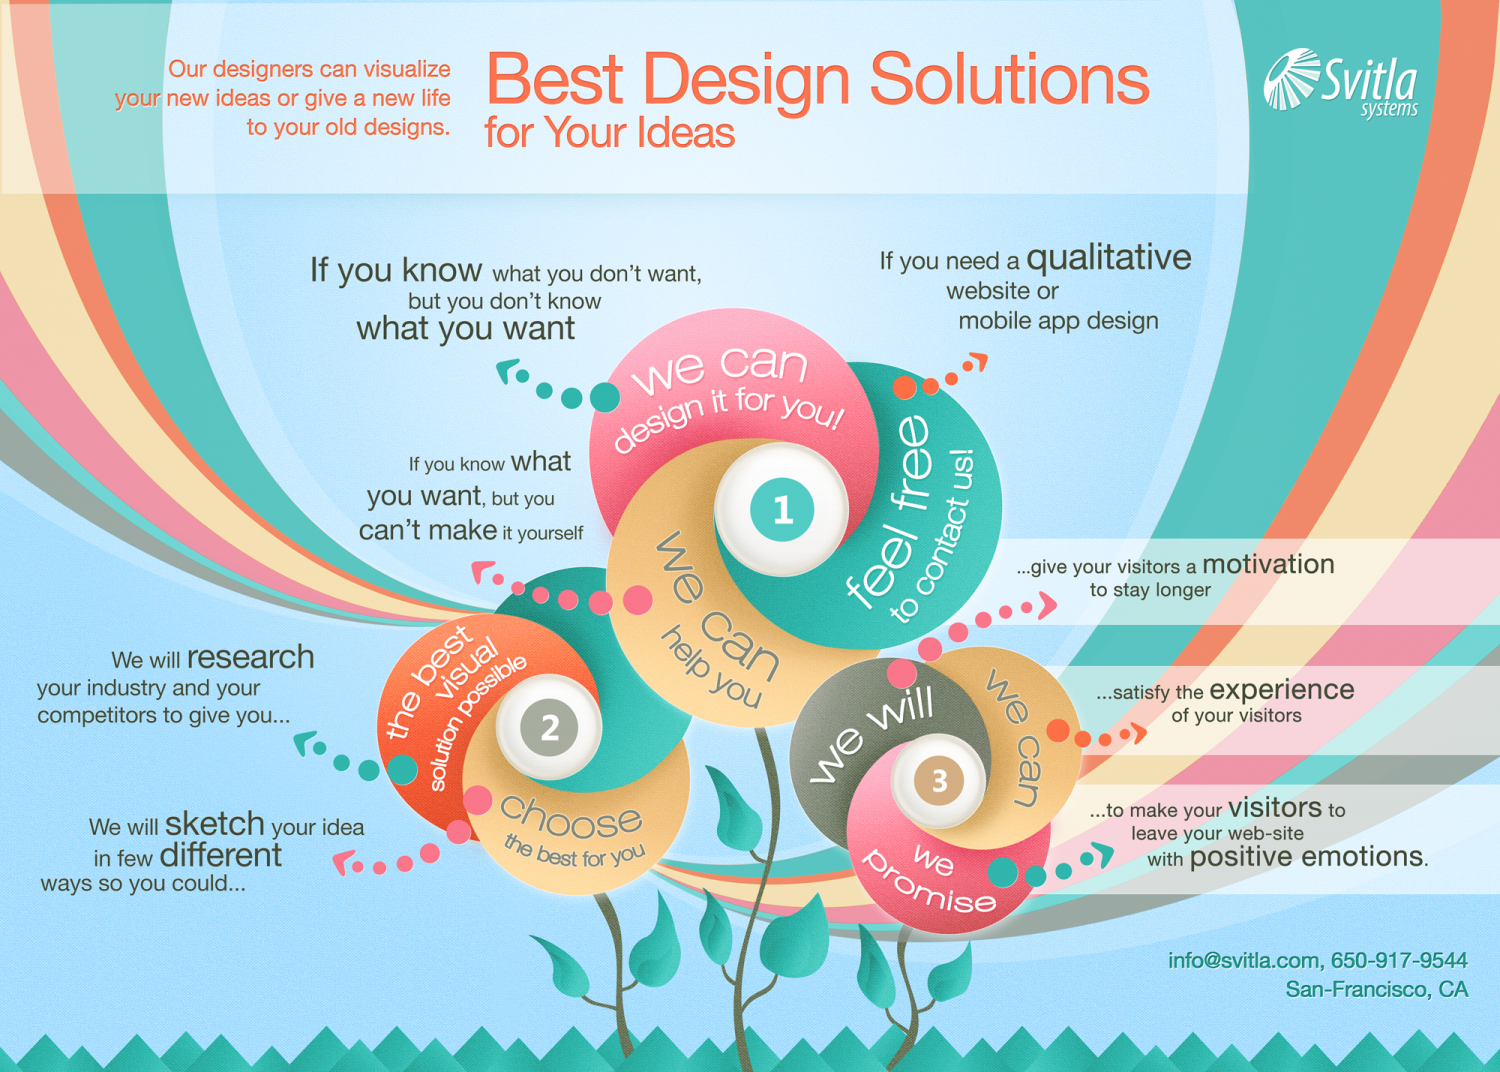 The Best Design Solutions